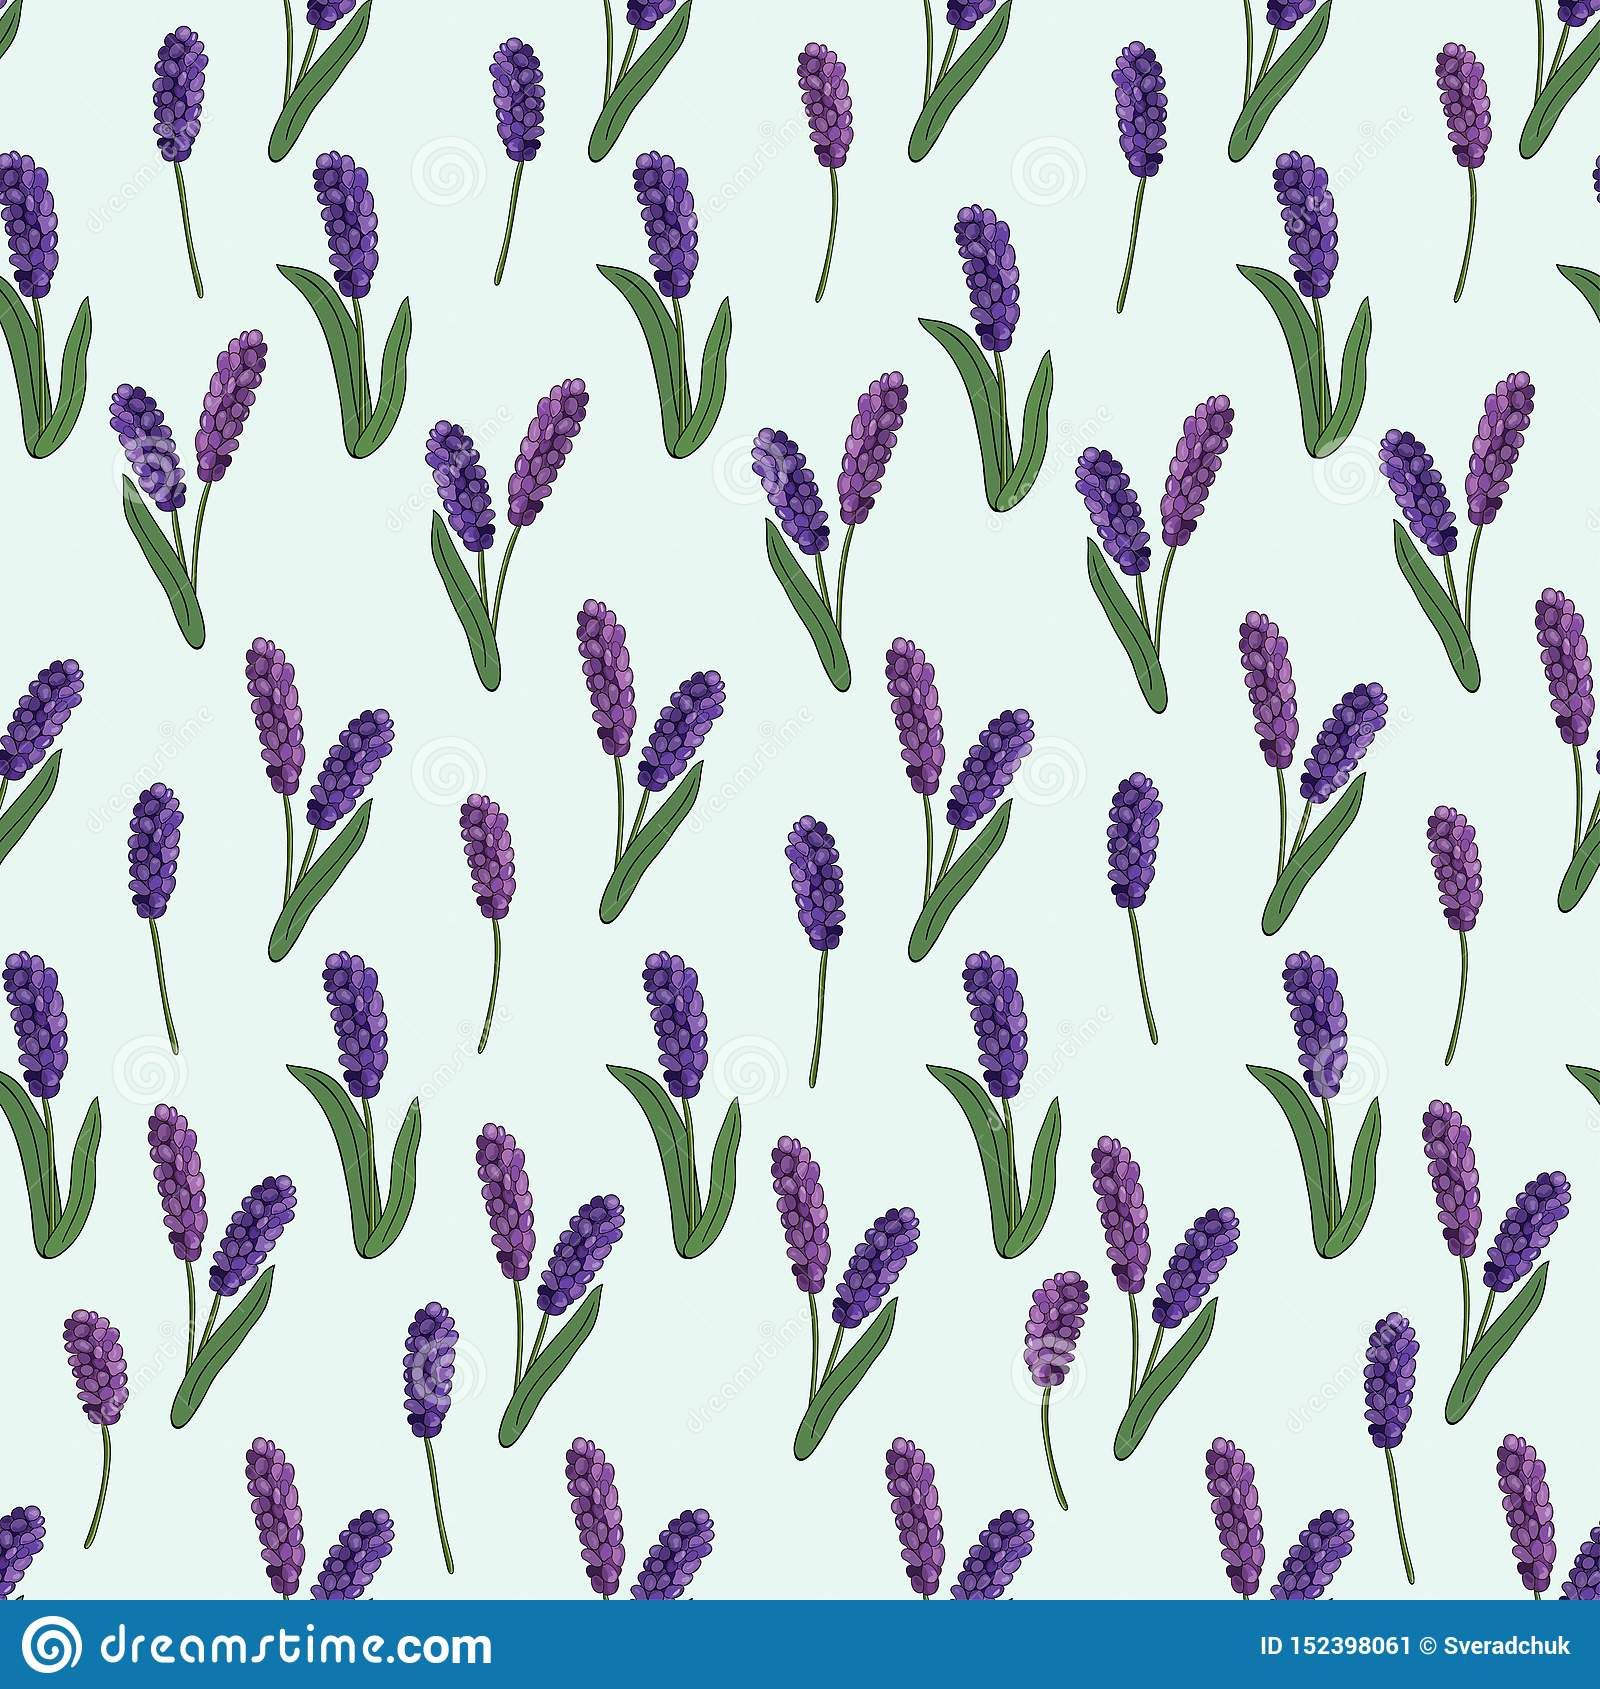 Seamless pattern of spring flowers on a blue background. Vector